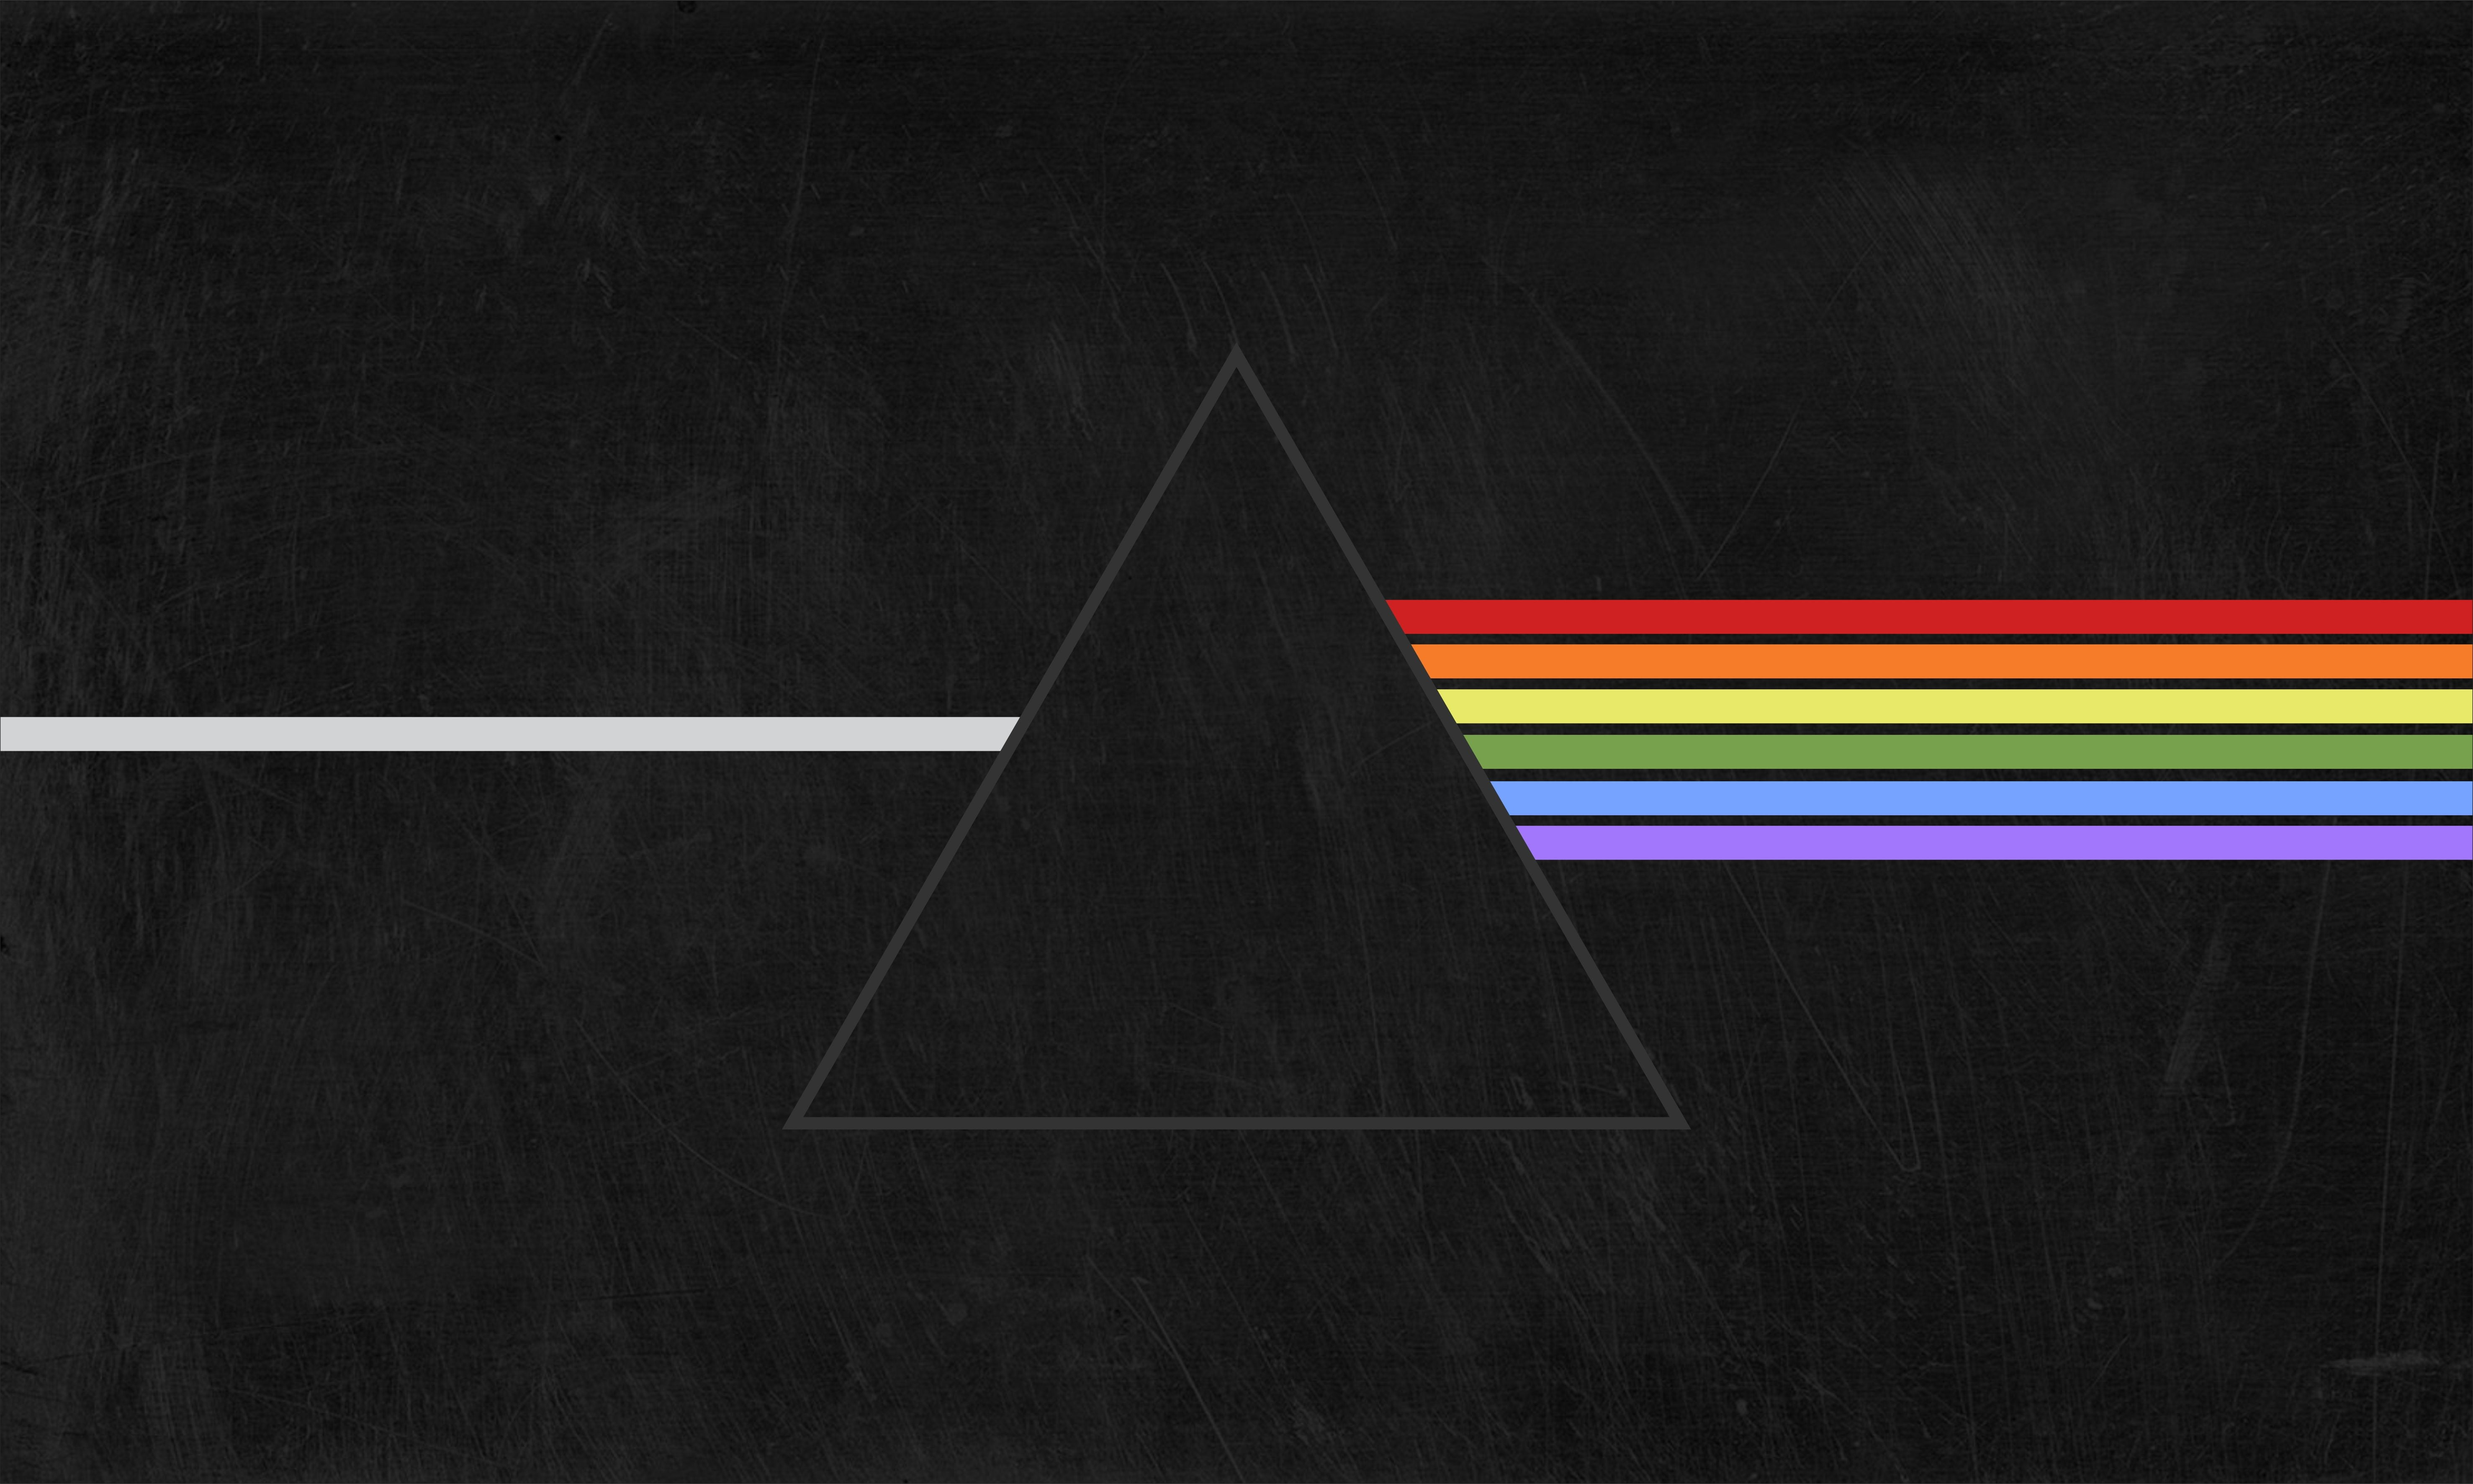 Iphone 2g Wallpaper For Iphone X Black And Red Wooden Table Pink Floyd Triangle Prism